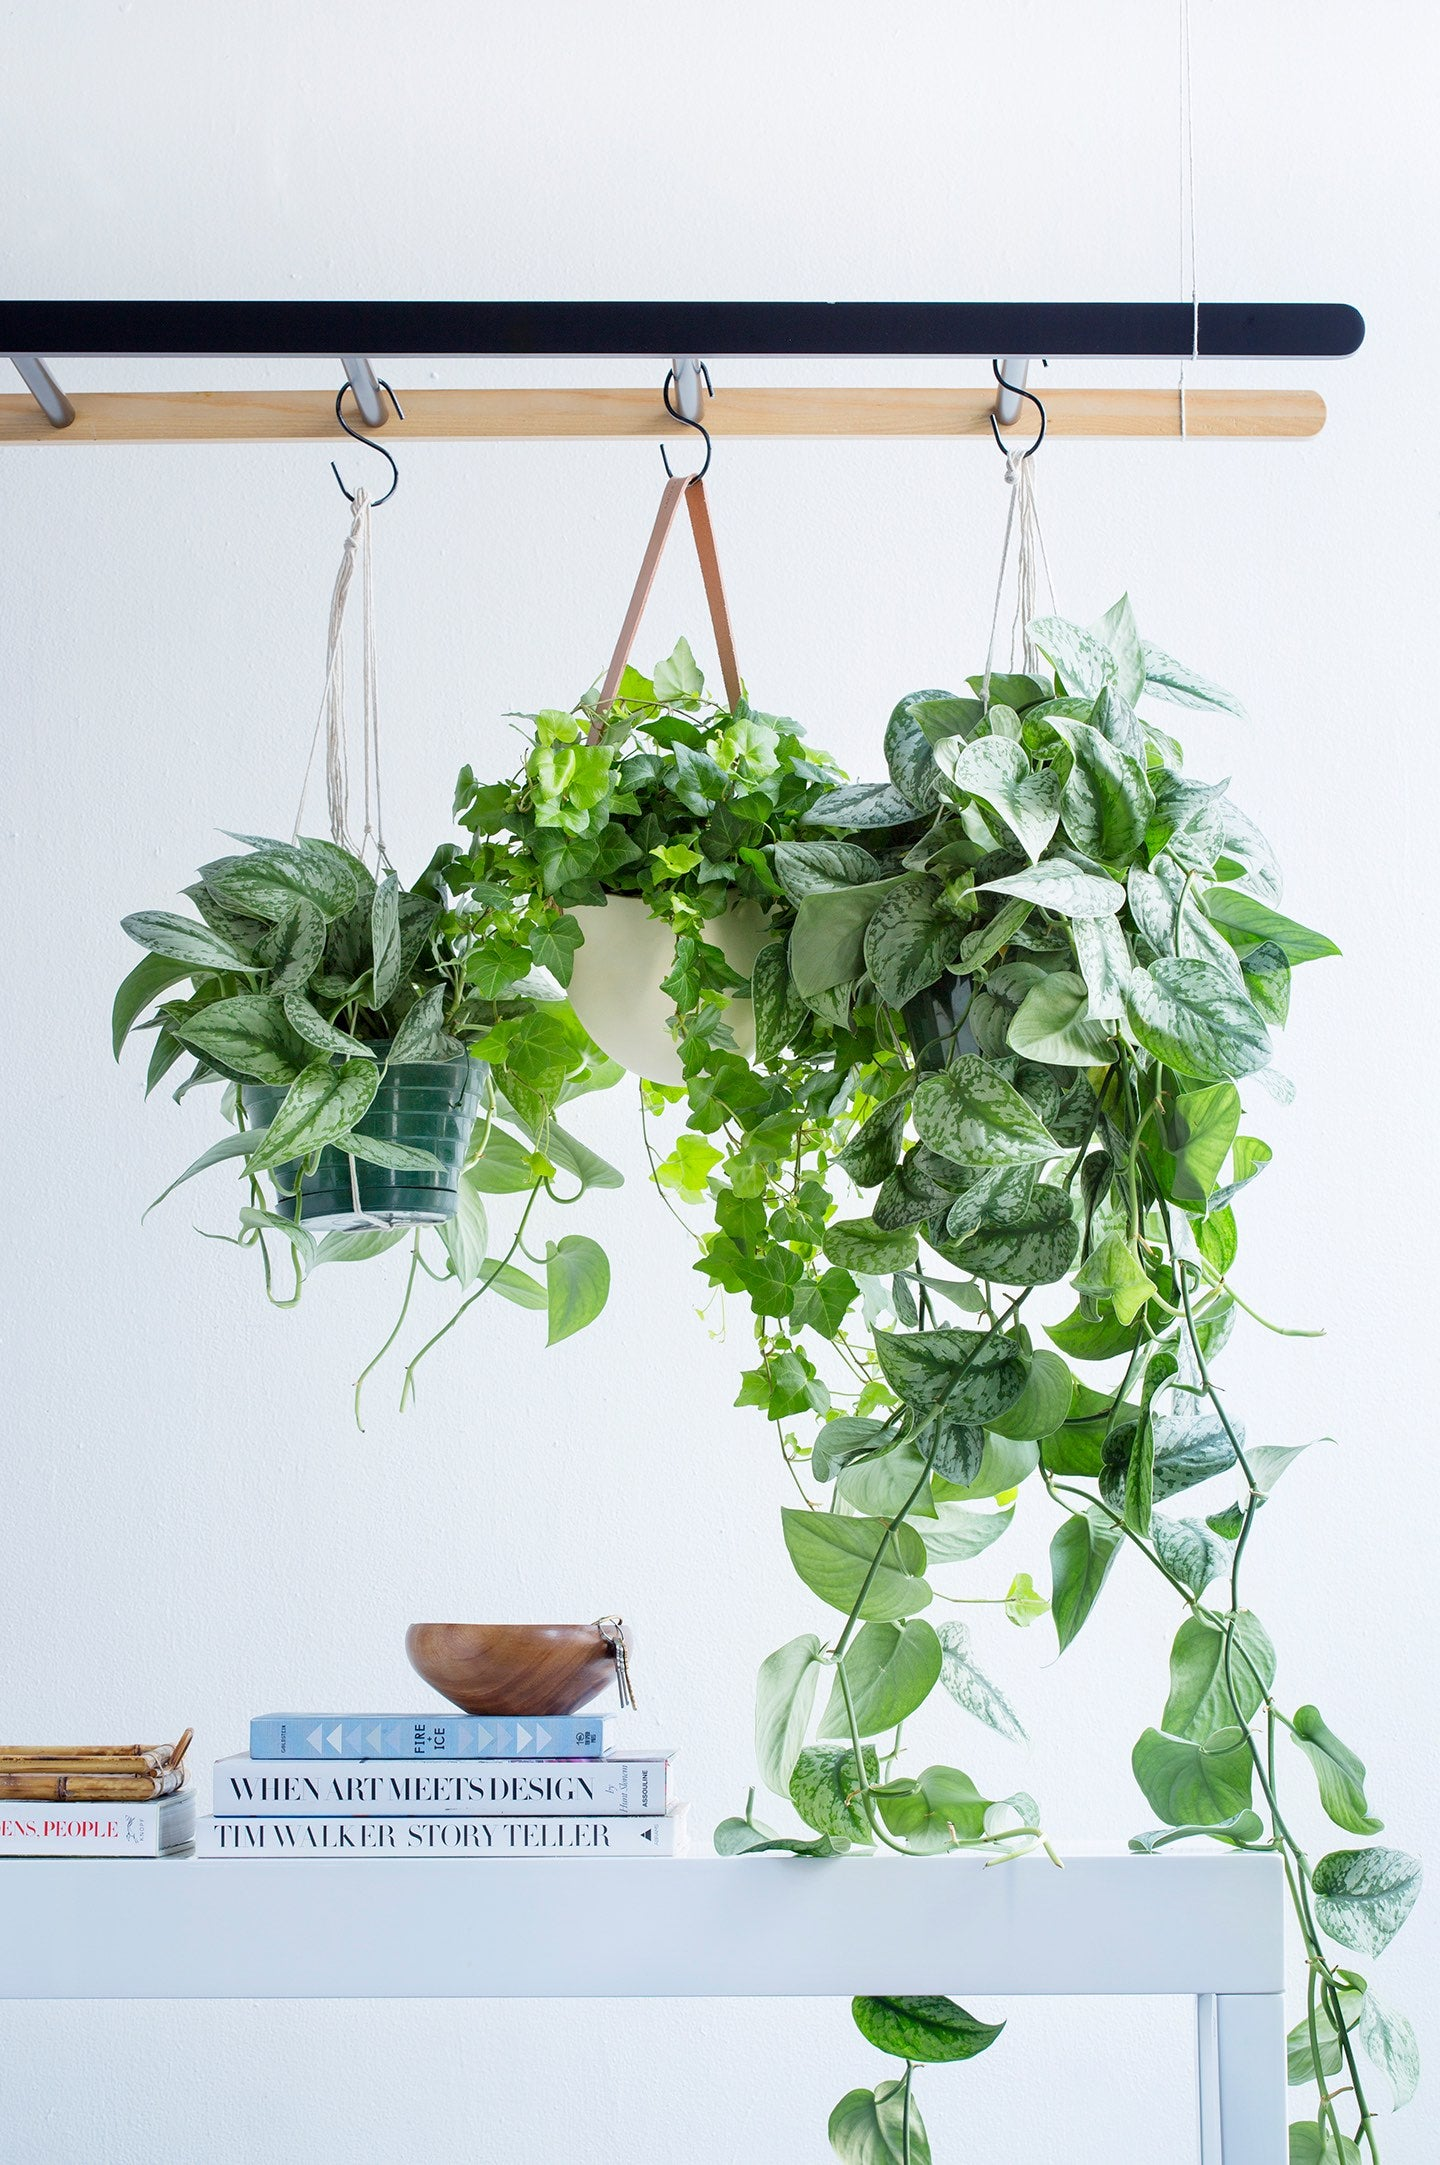 Yes, You Can Repurpose Food Scraps into House Plant Fertilizer